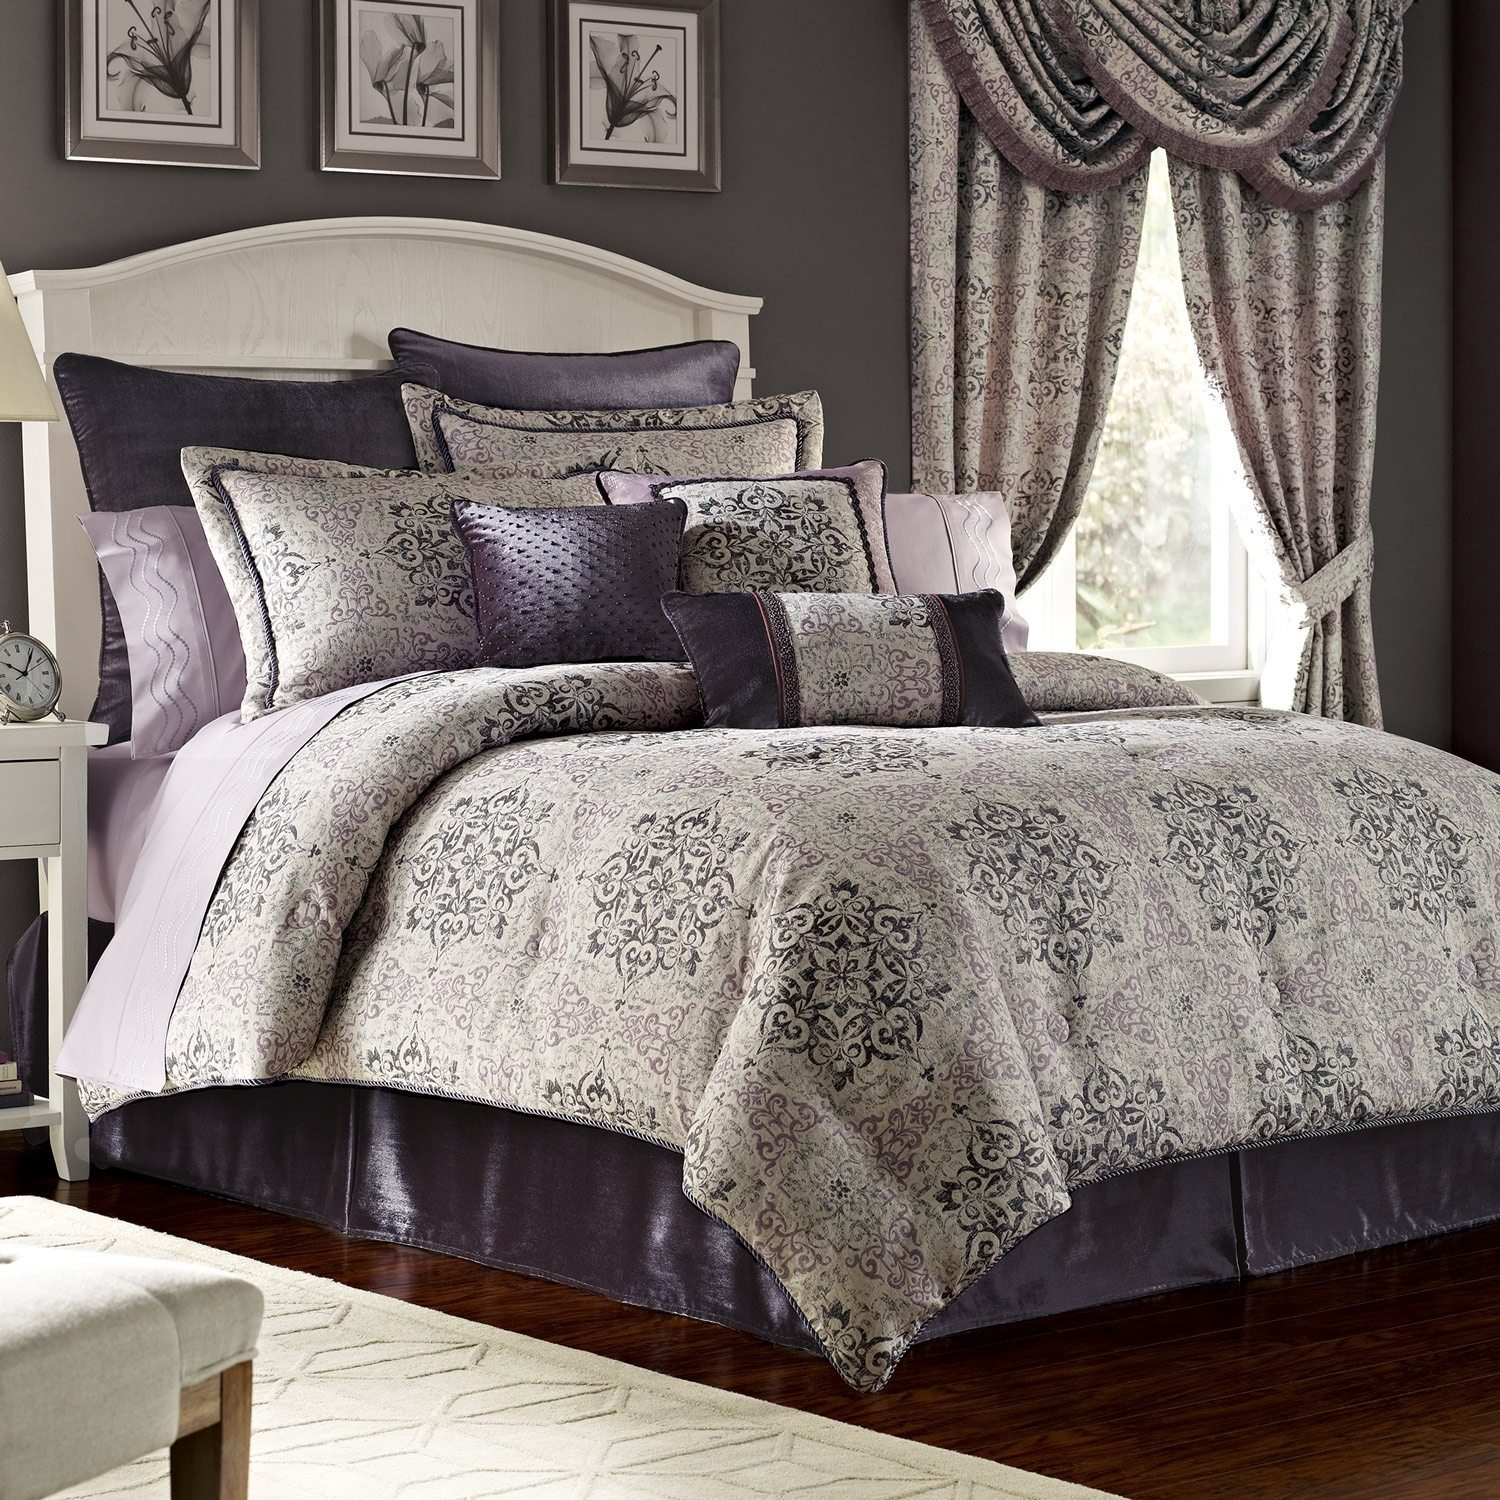 Tahari Bedding Collection.Large Size Of Bed Frames ...